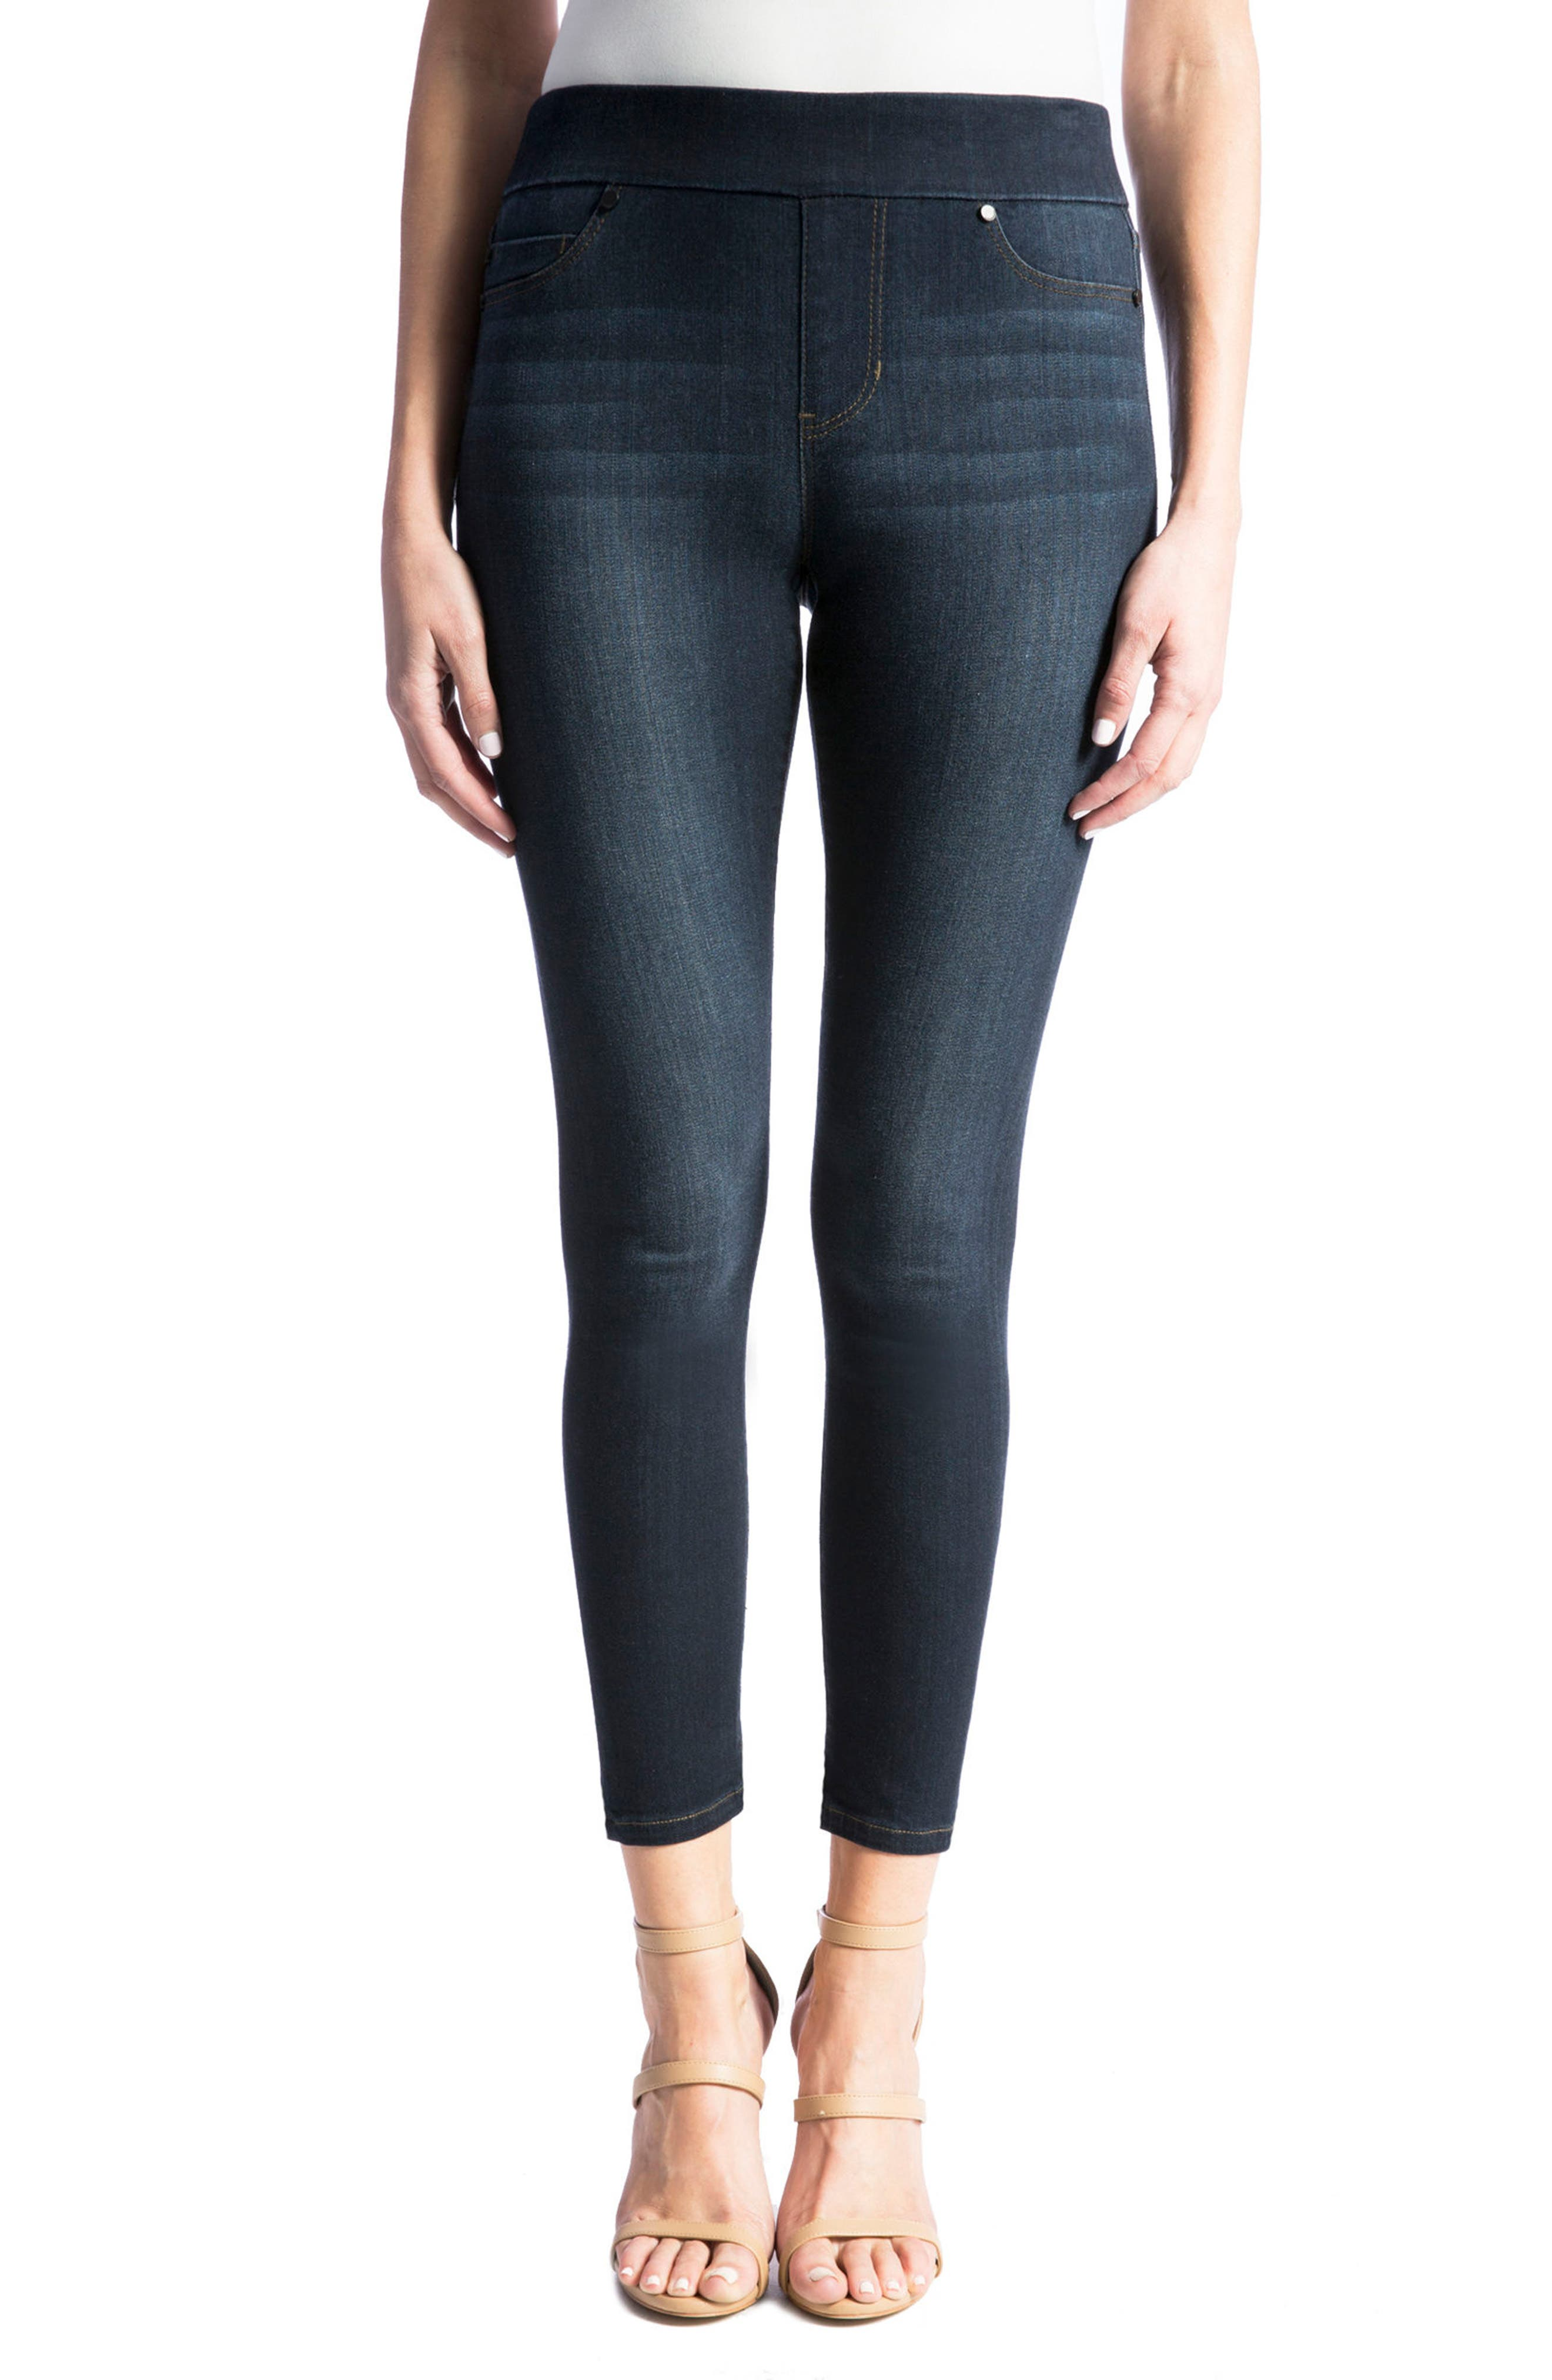 LIVERPOOL JEANS COMPANY High Rise Stretch Denim Ankle Leggings